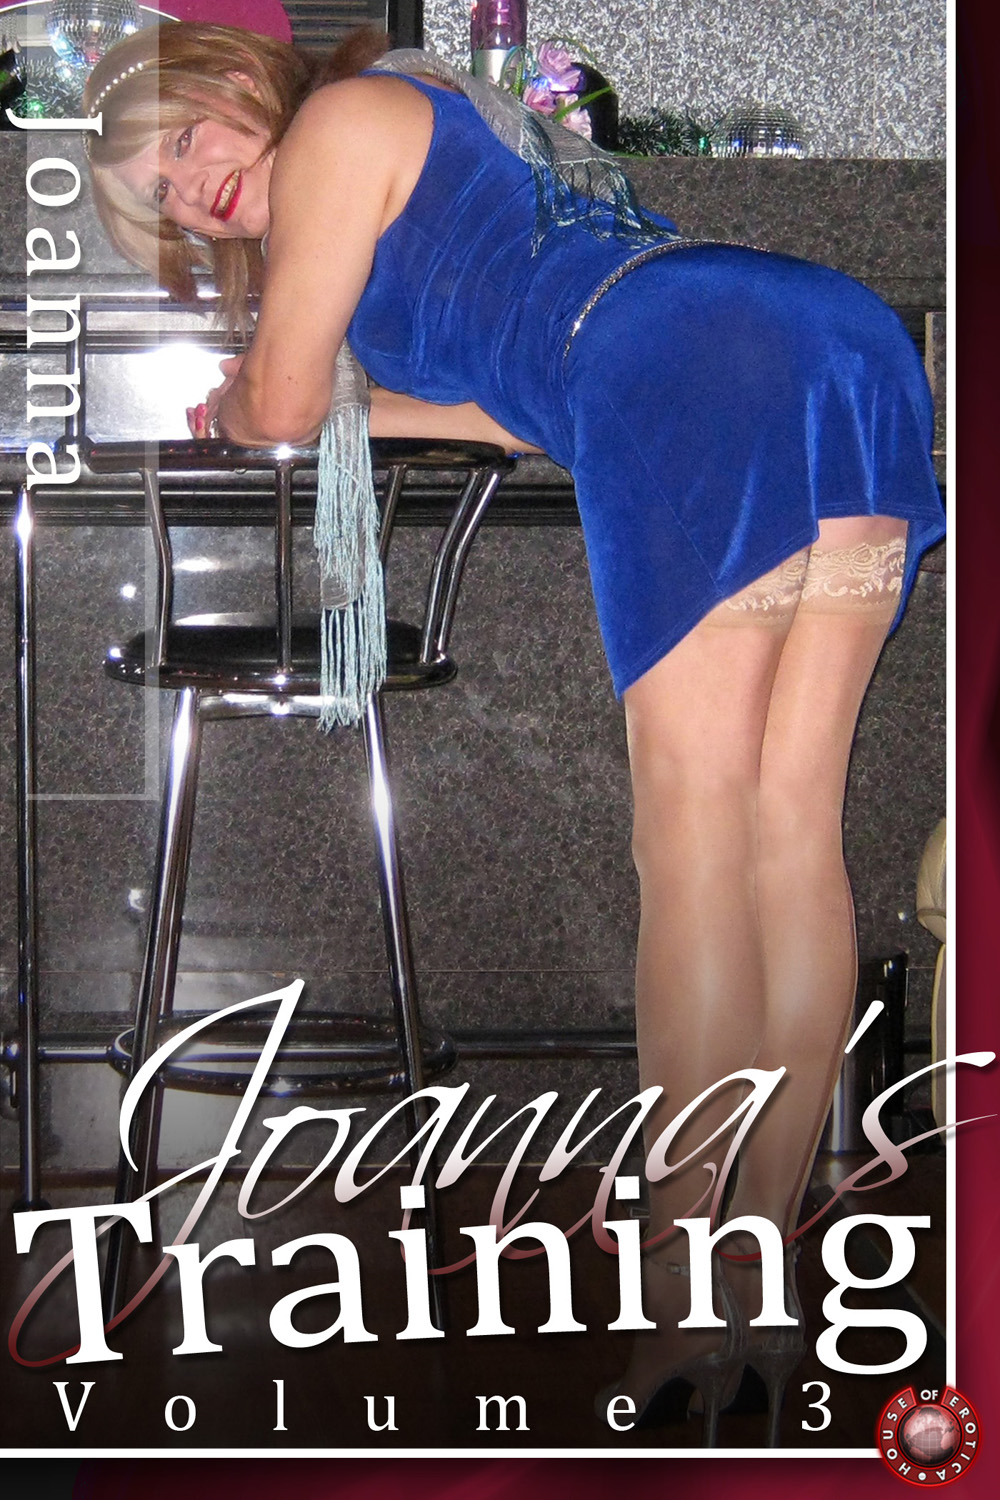 Joanna's Training - Volume 3 By: Joanna